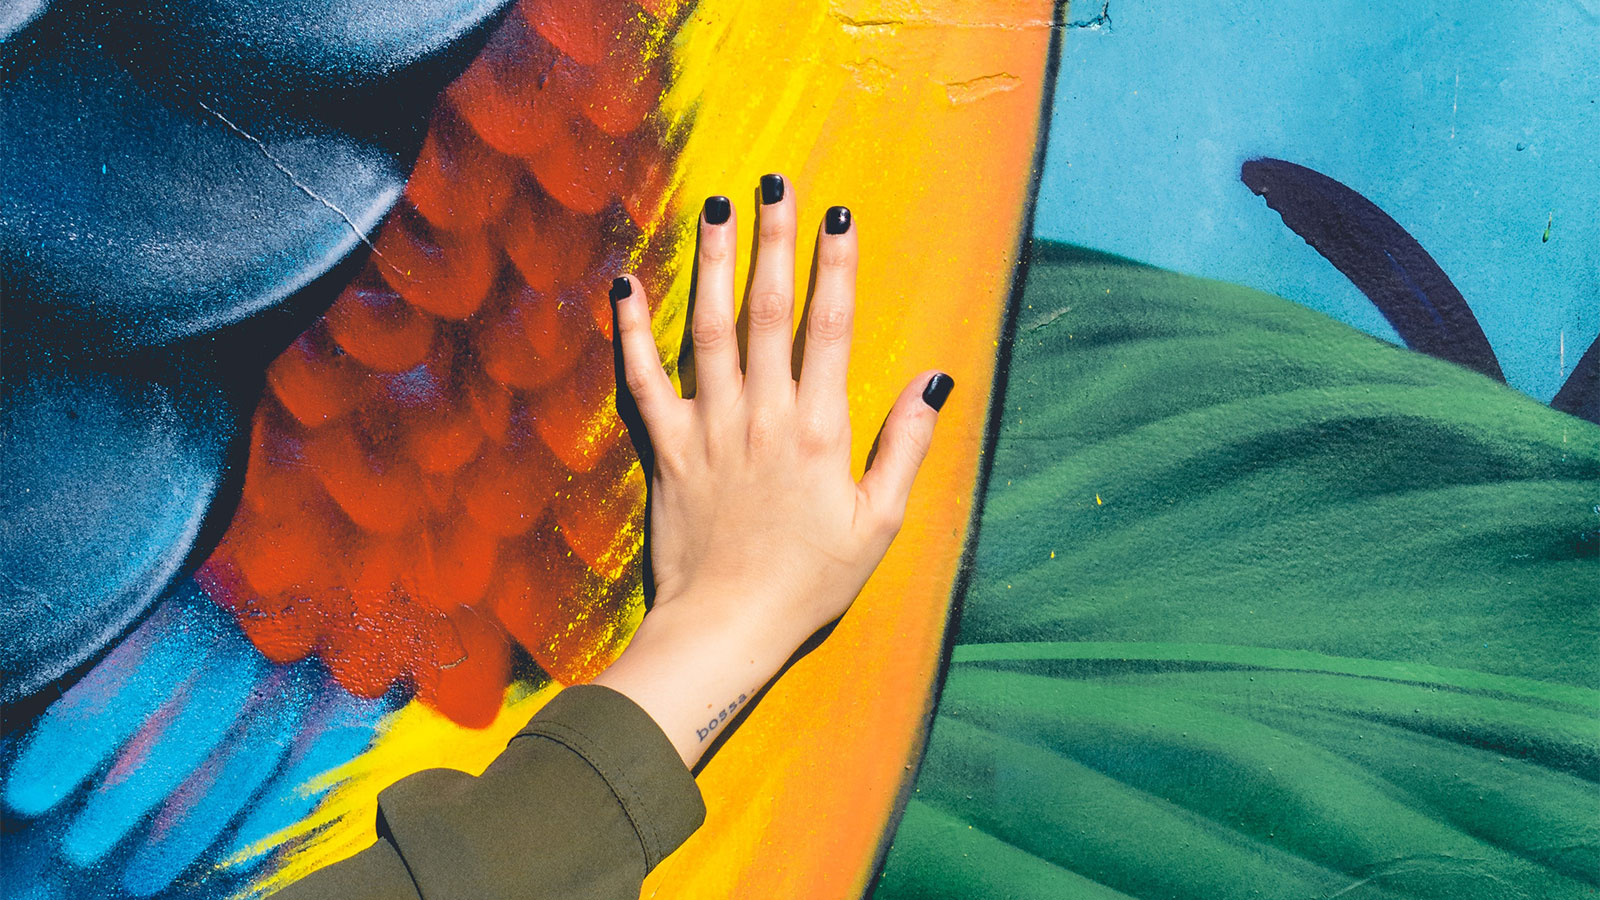 A hand with black painted nails laid flat over a brightly painted mural.